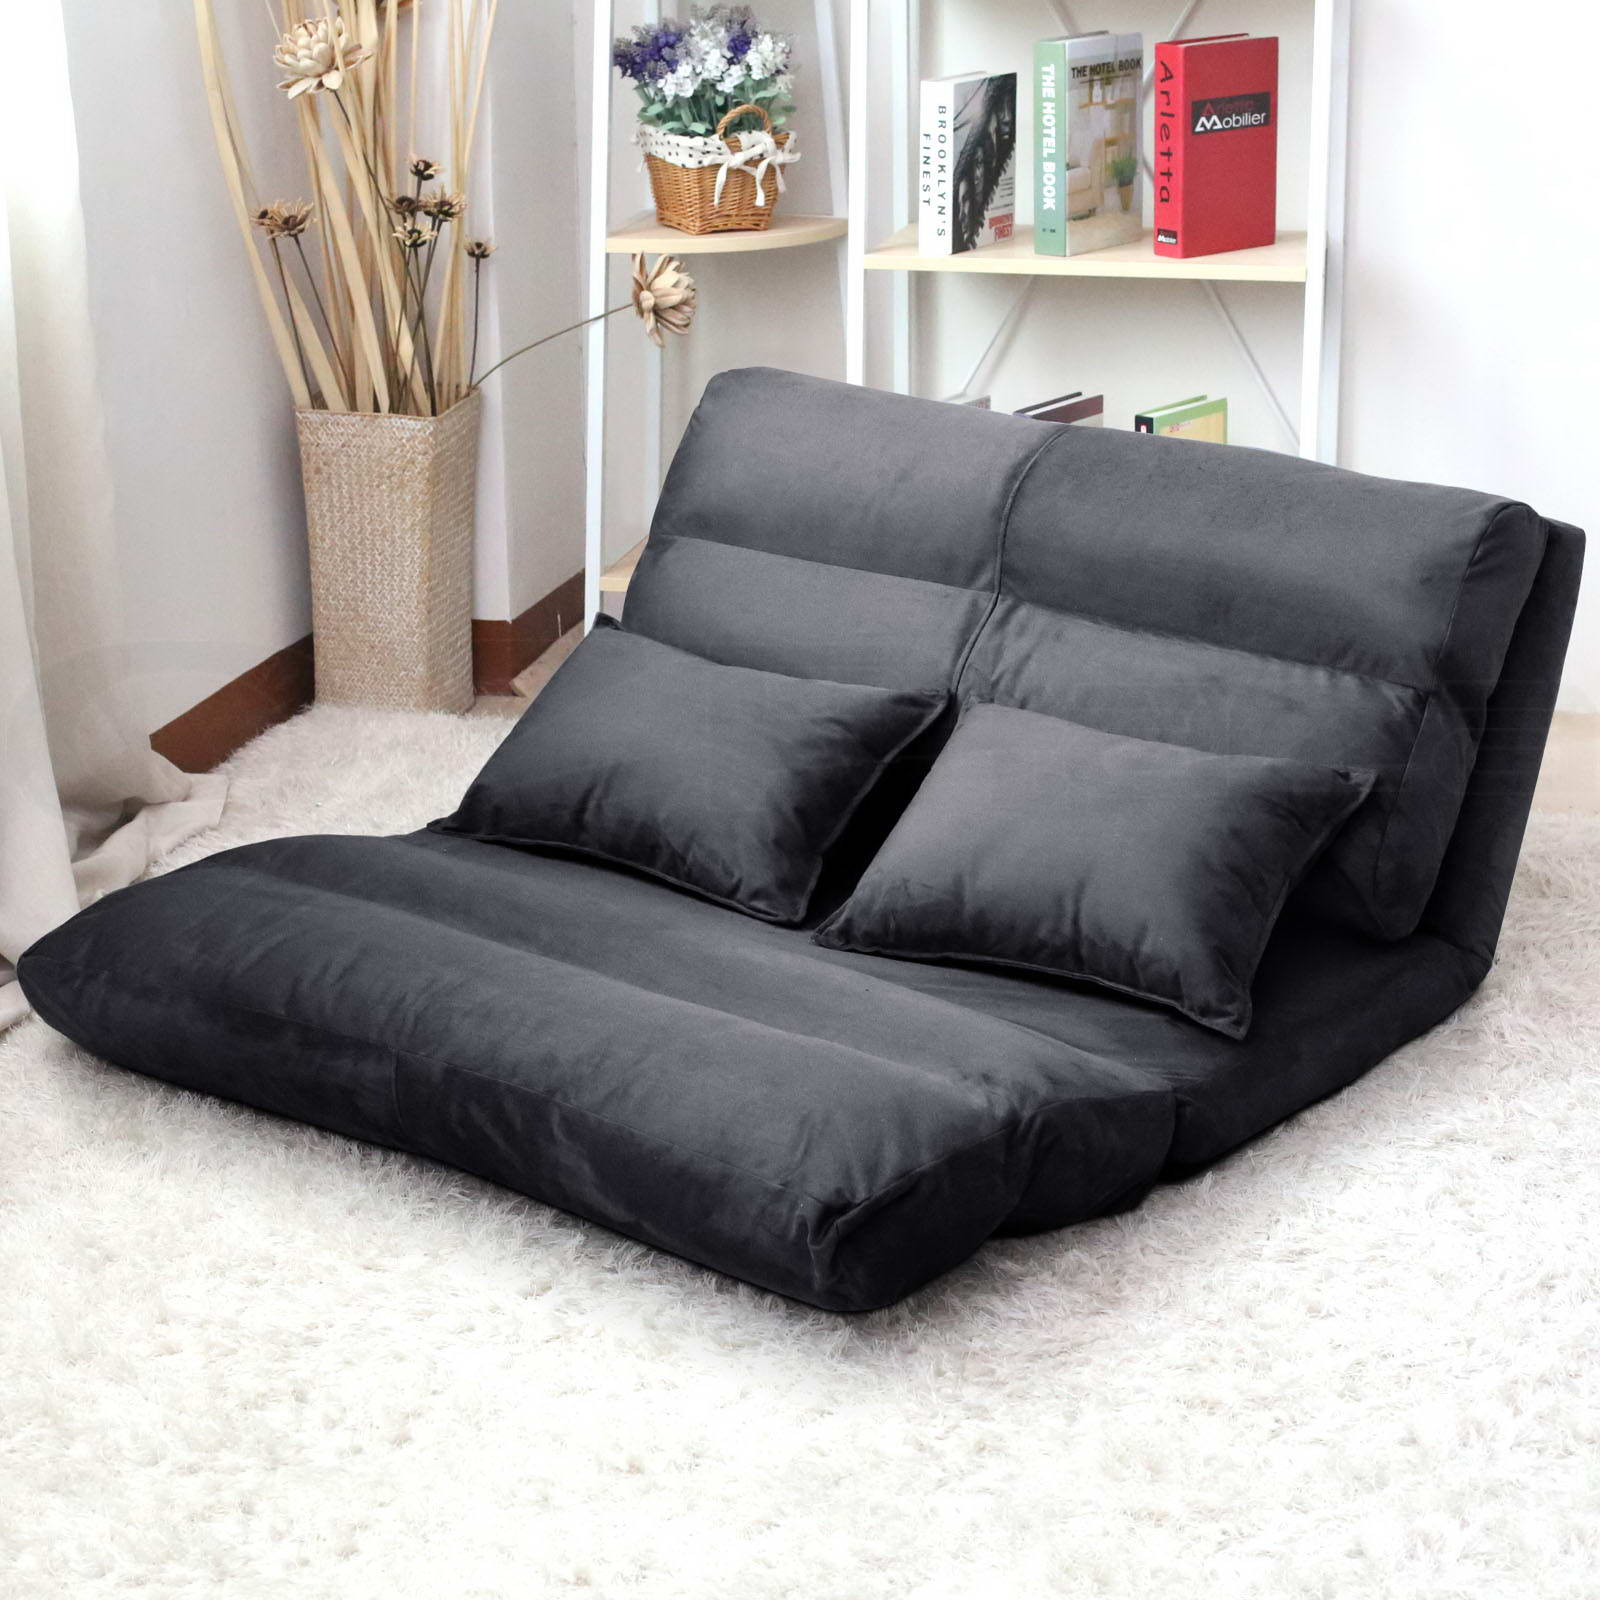 Creative 30  Double Chaise Lounge sofa